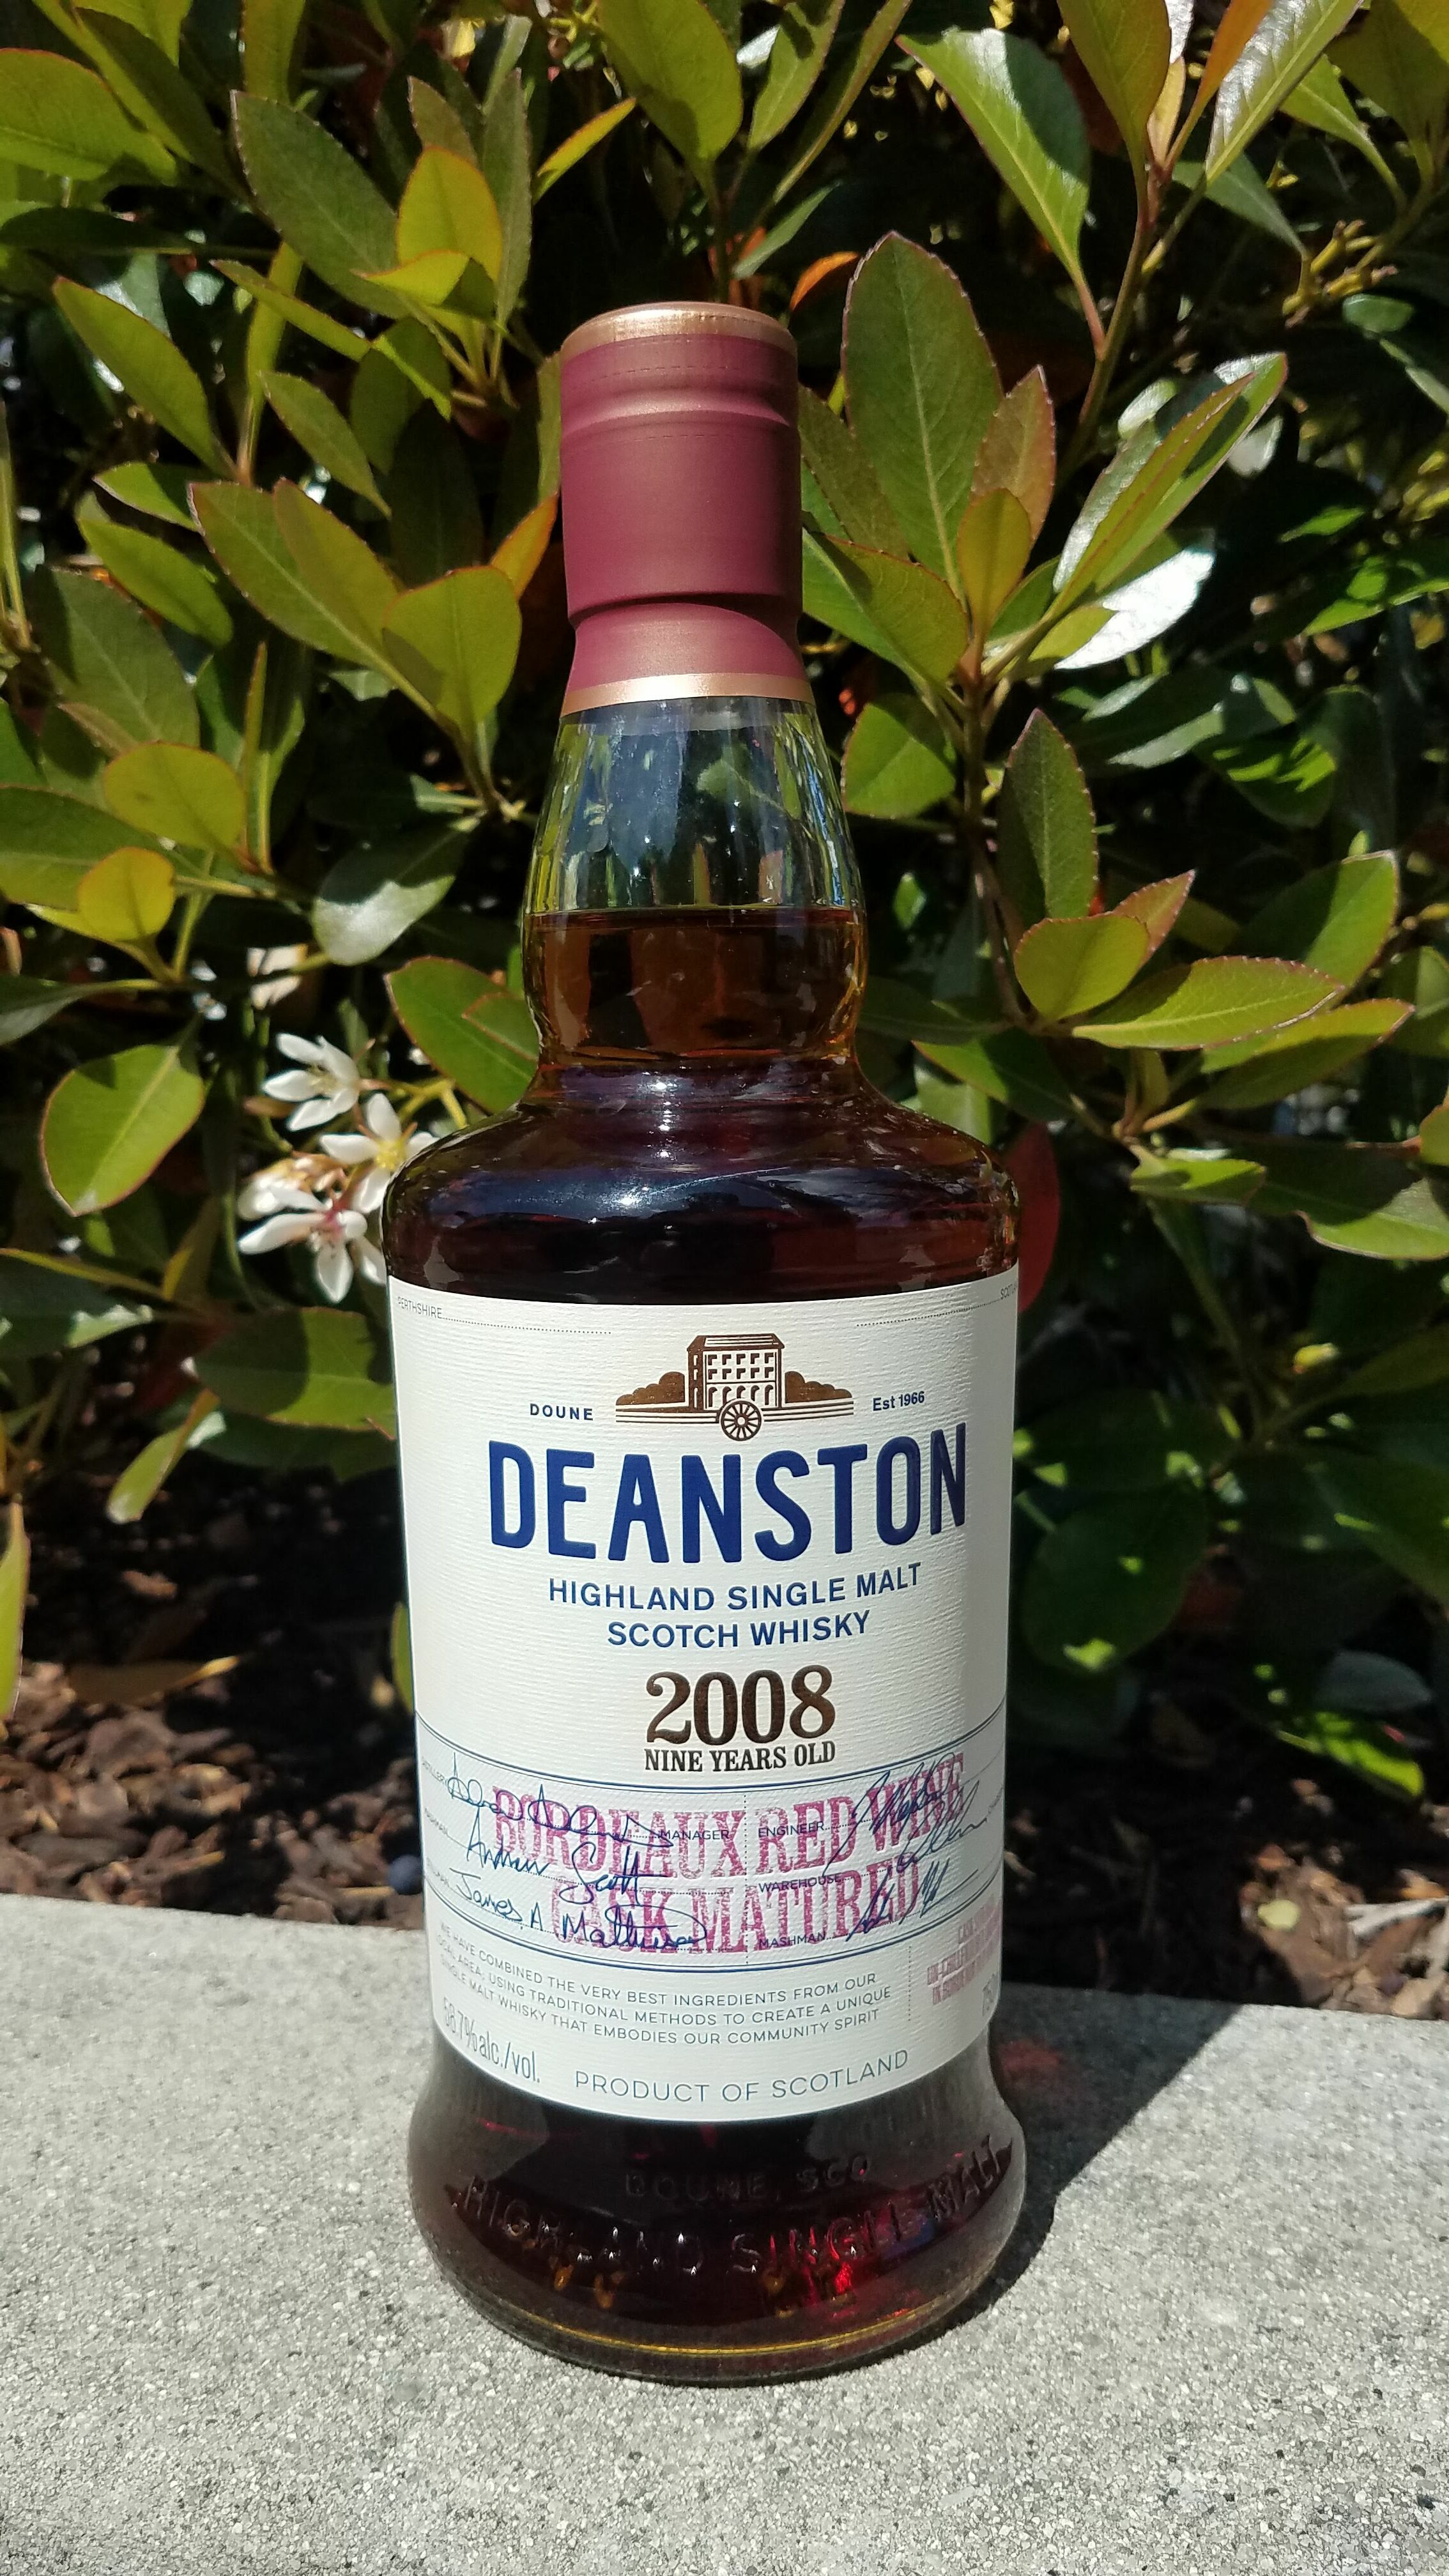 Deanston 2008 Bordeaux Red Wine Cask: JAWS Rating 8.3/10